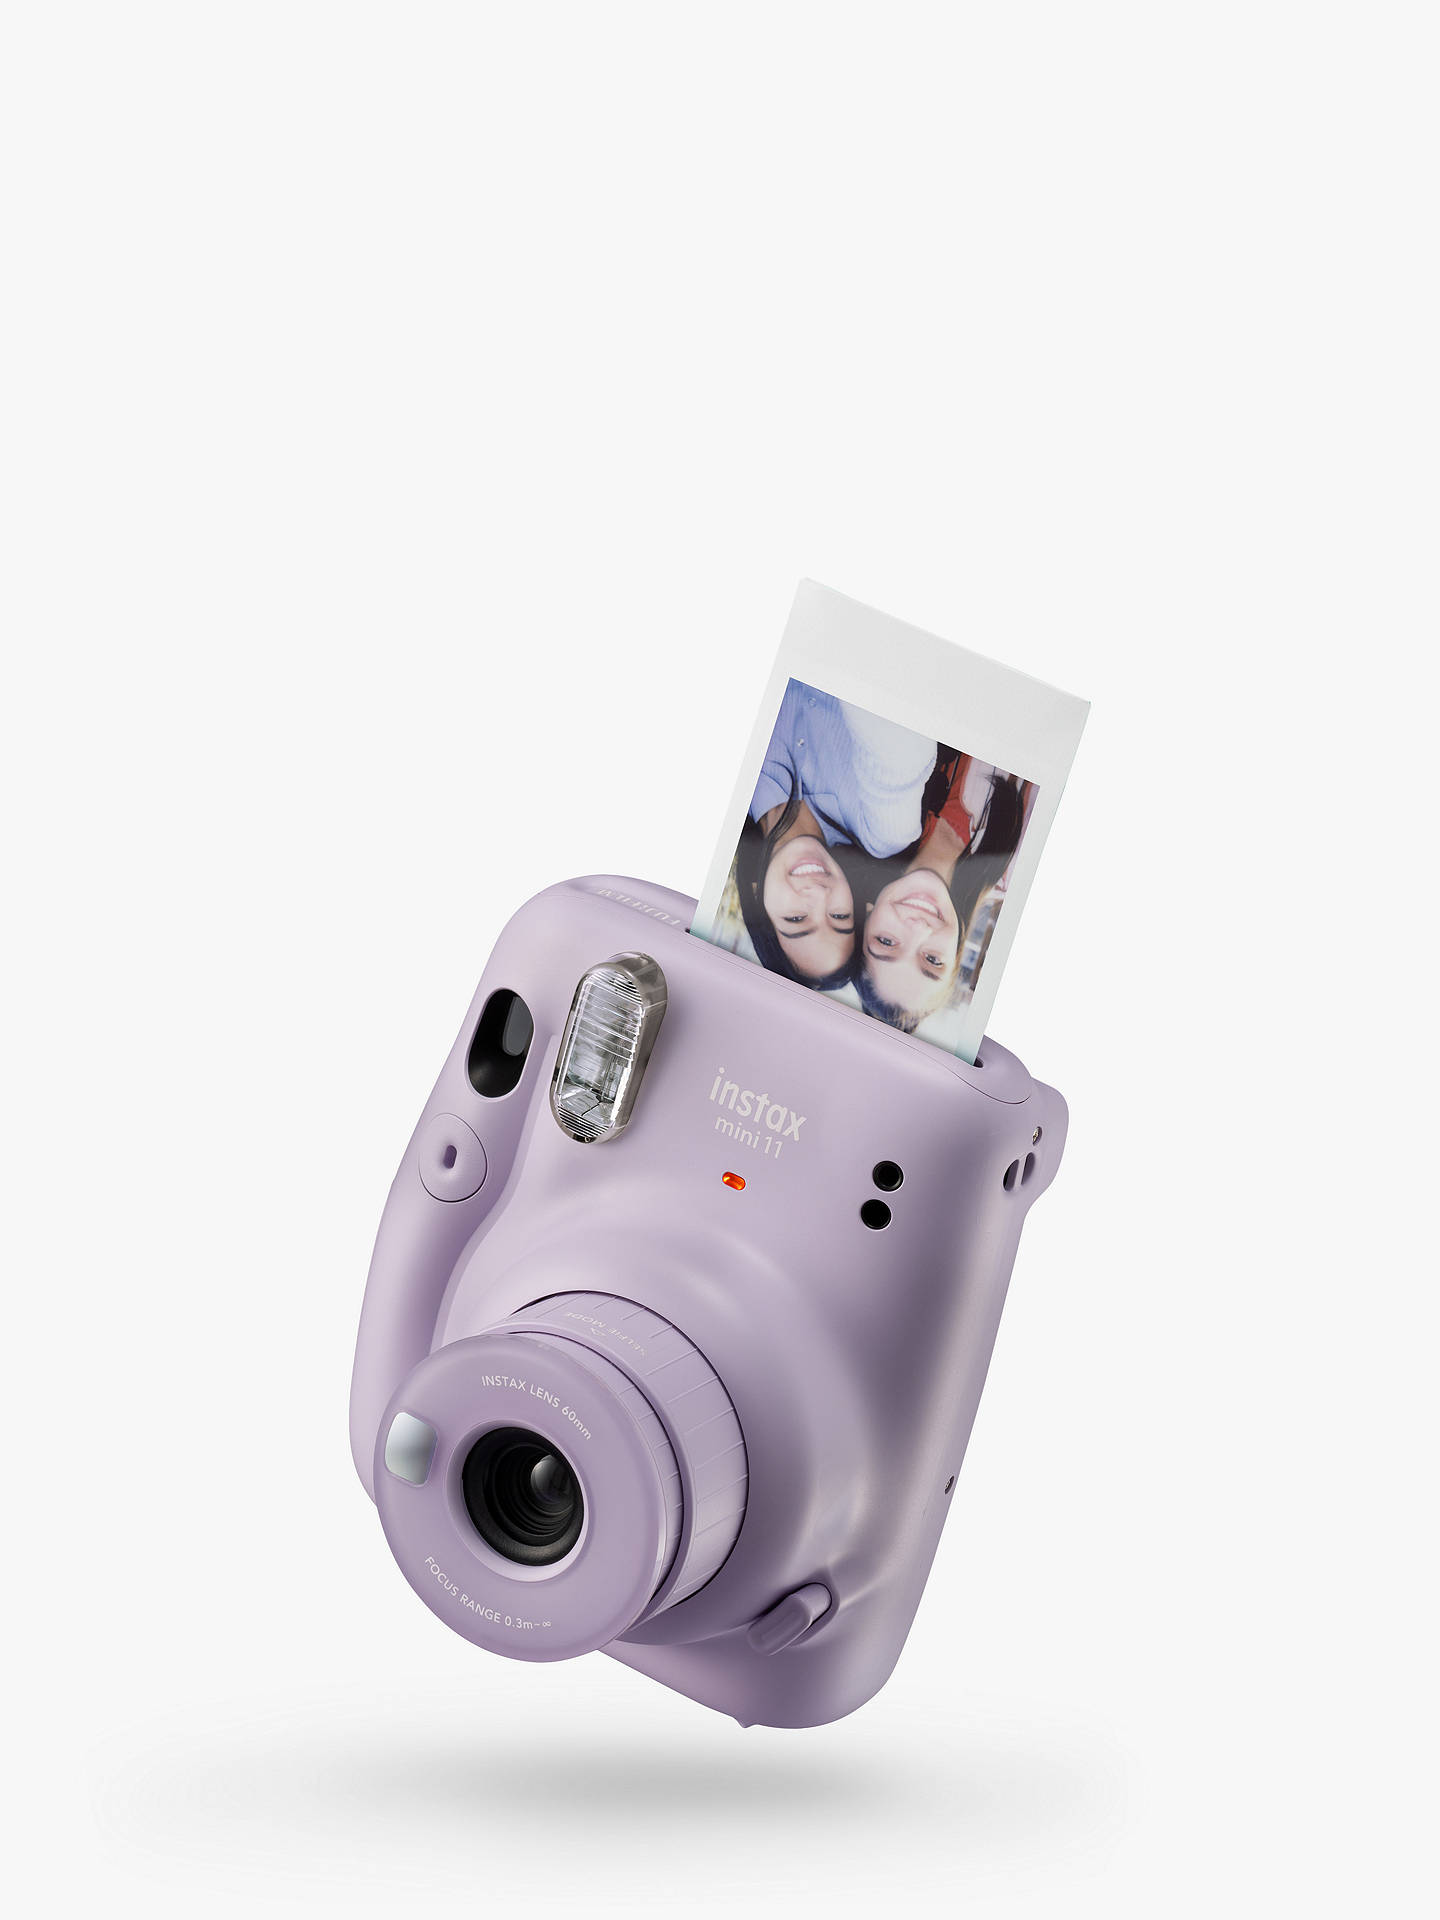 Buy Fujifilm Instax Mini 11 Instant Camera with Built-In Flash & Hand Strap, Lilac Purple Online at johnlewis.com